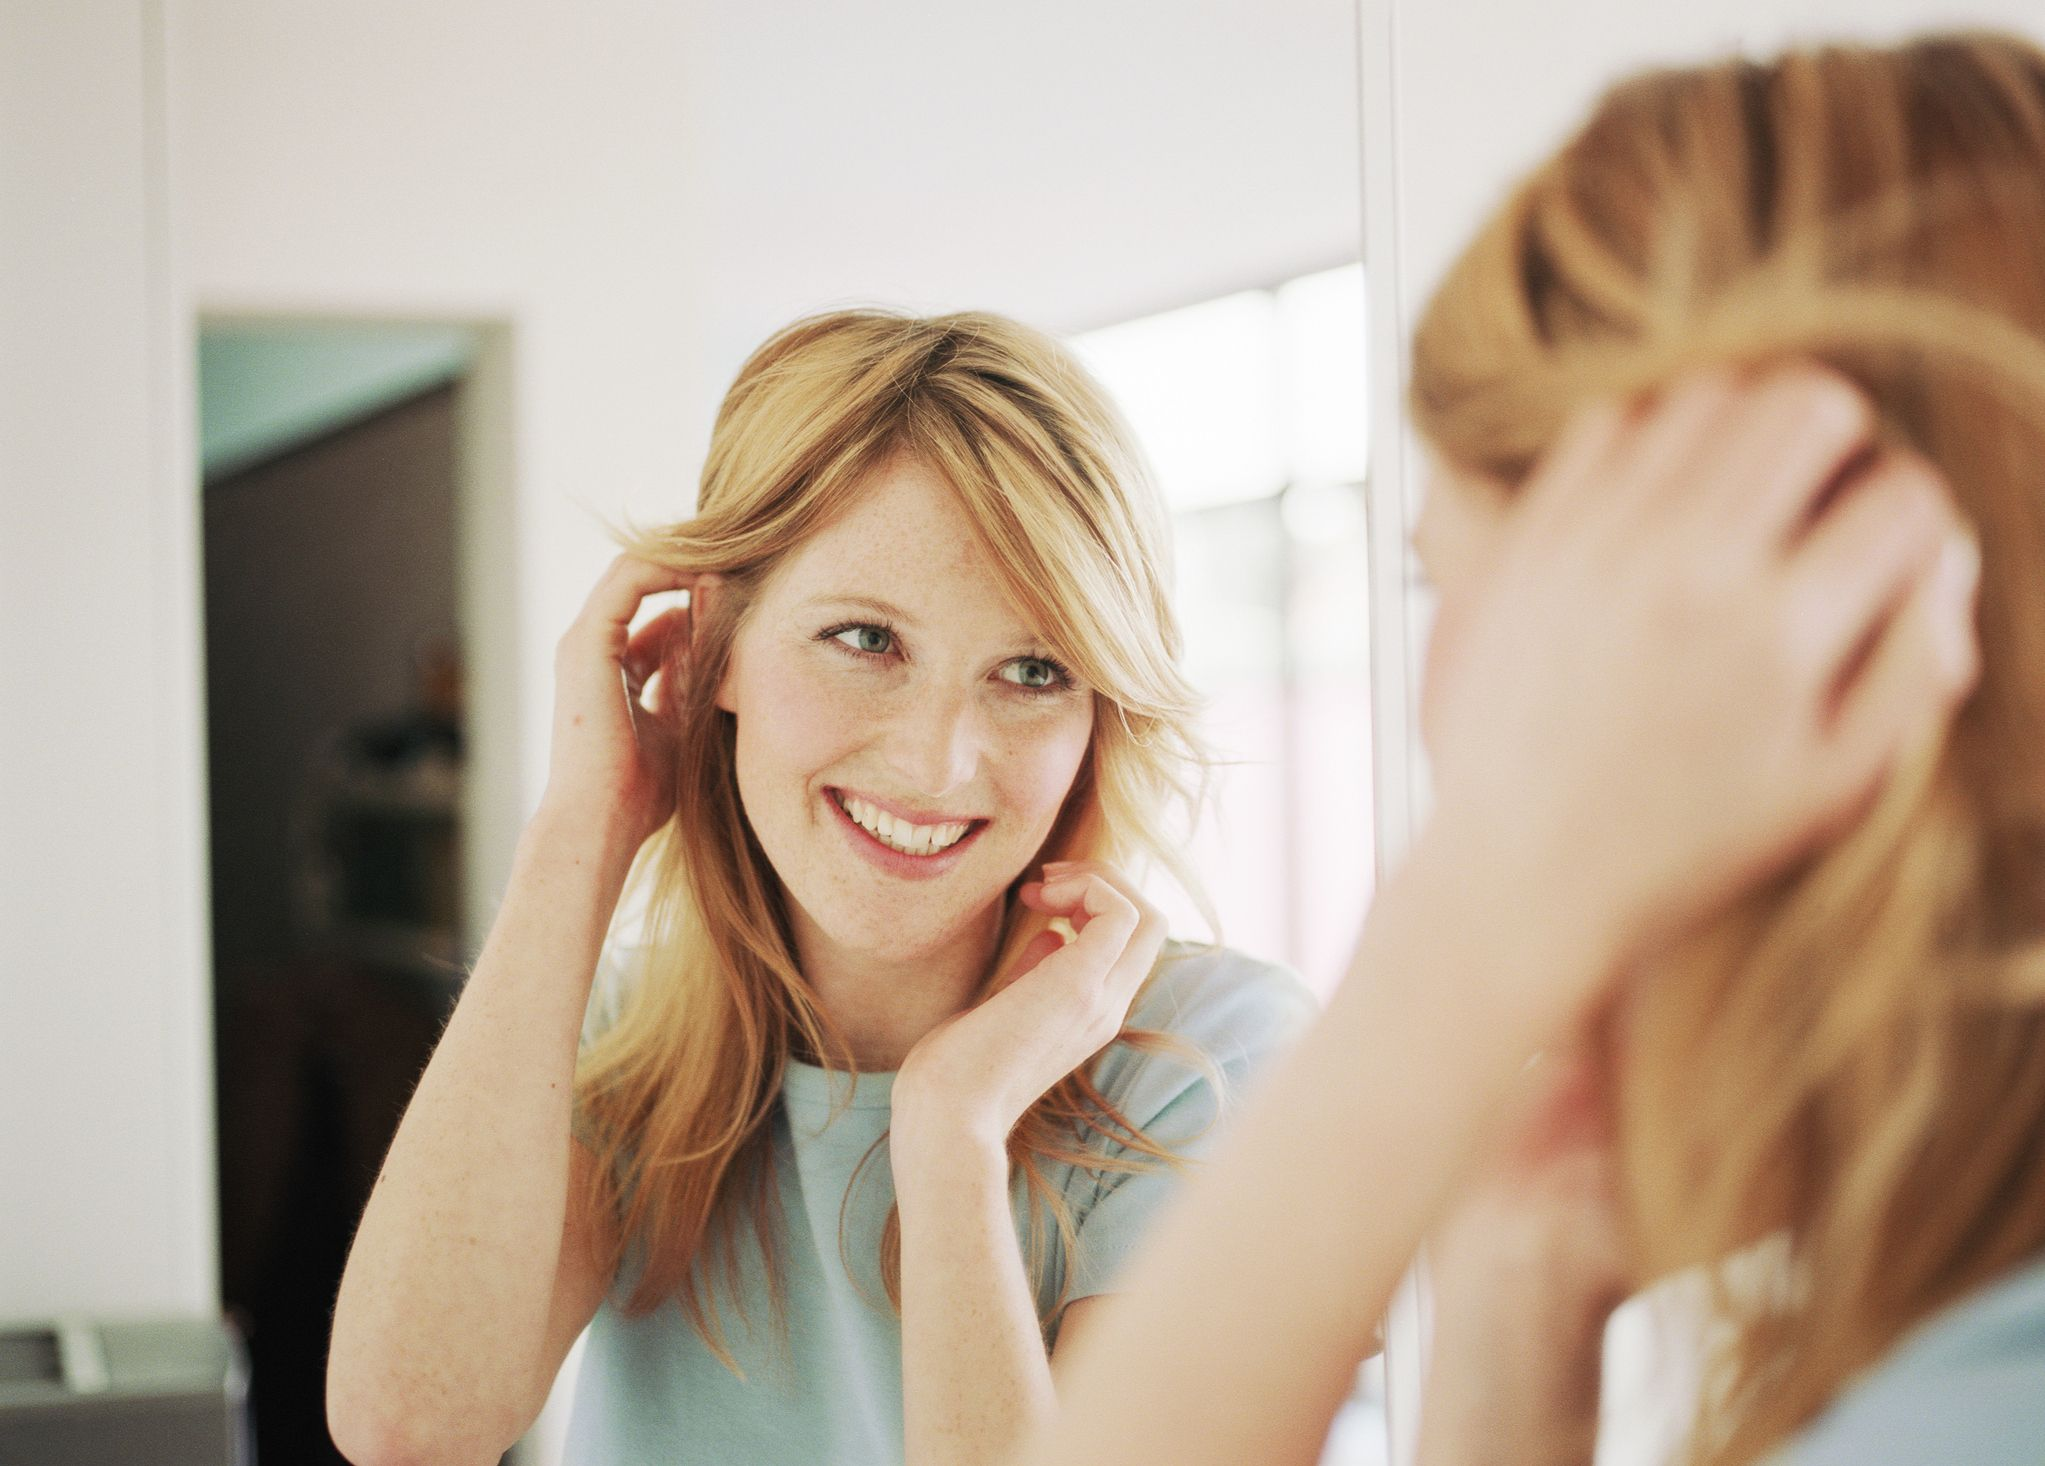 Dealing with Flaws: Enhancing Your Appearance to Boost Confidence